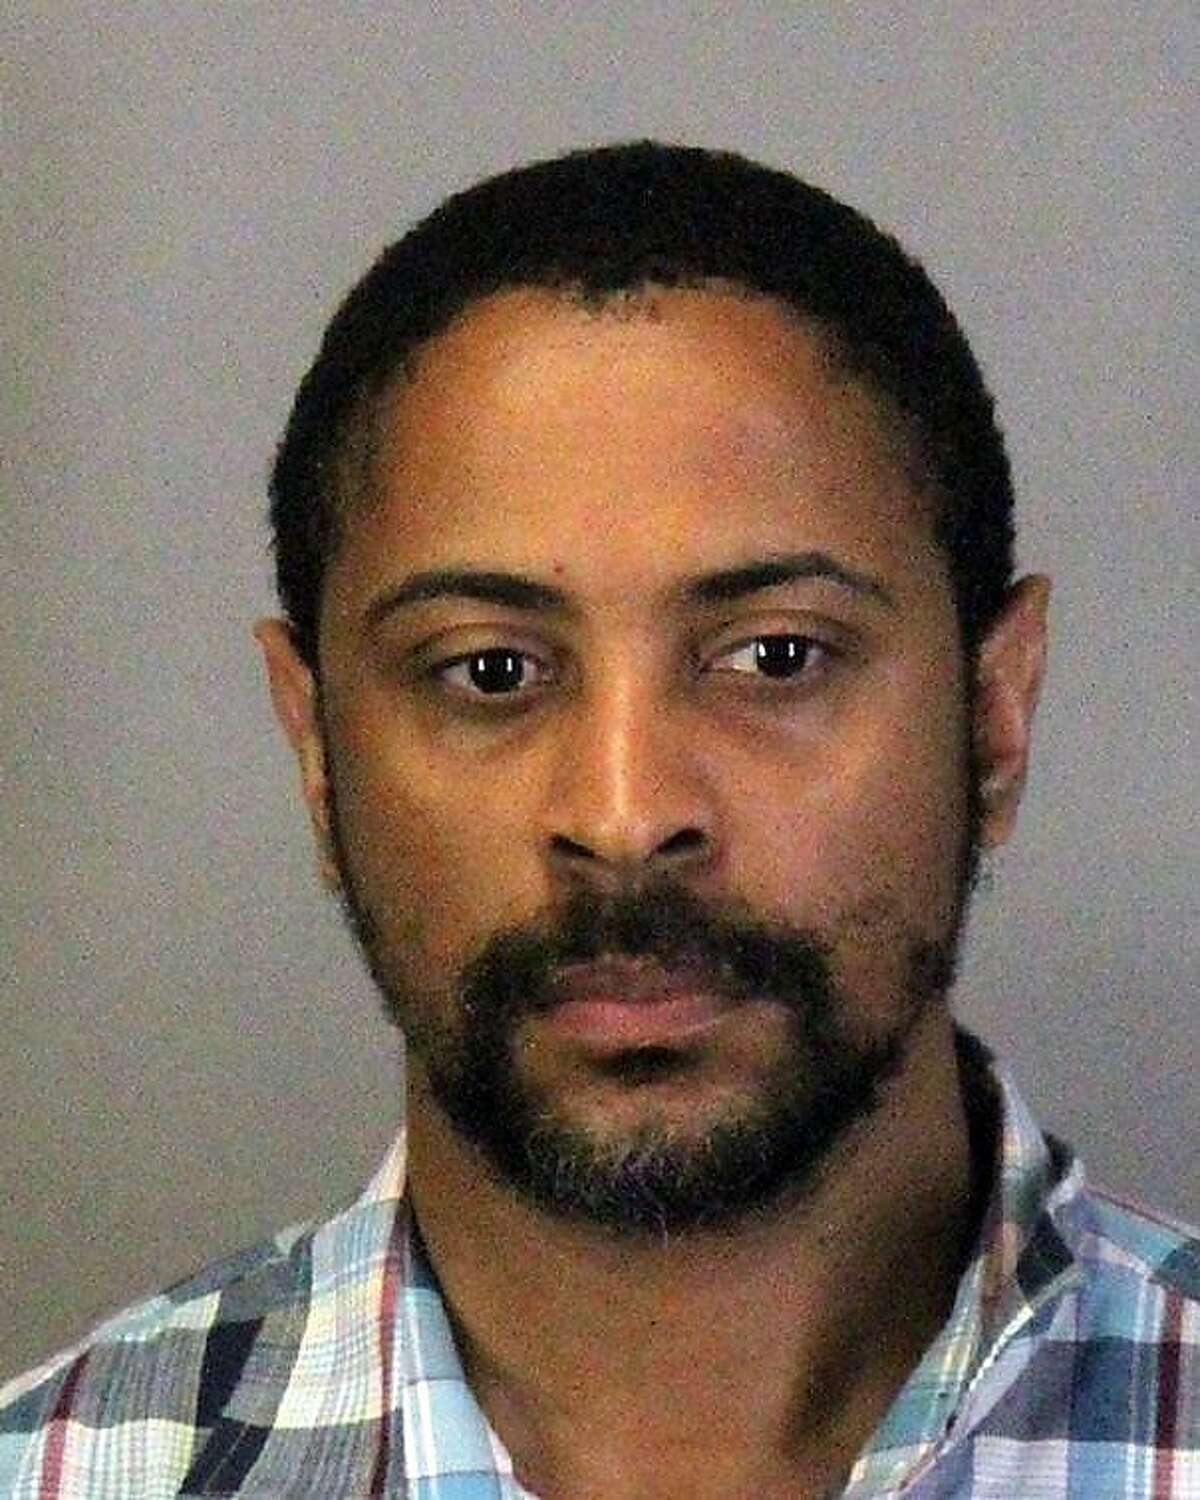 The suspect from the El Camino Real/Sunnyvale Saratoga incident has been identified as Isaiah Joel Peoples (12/02/1984) a resident of Sunnyvale.